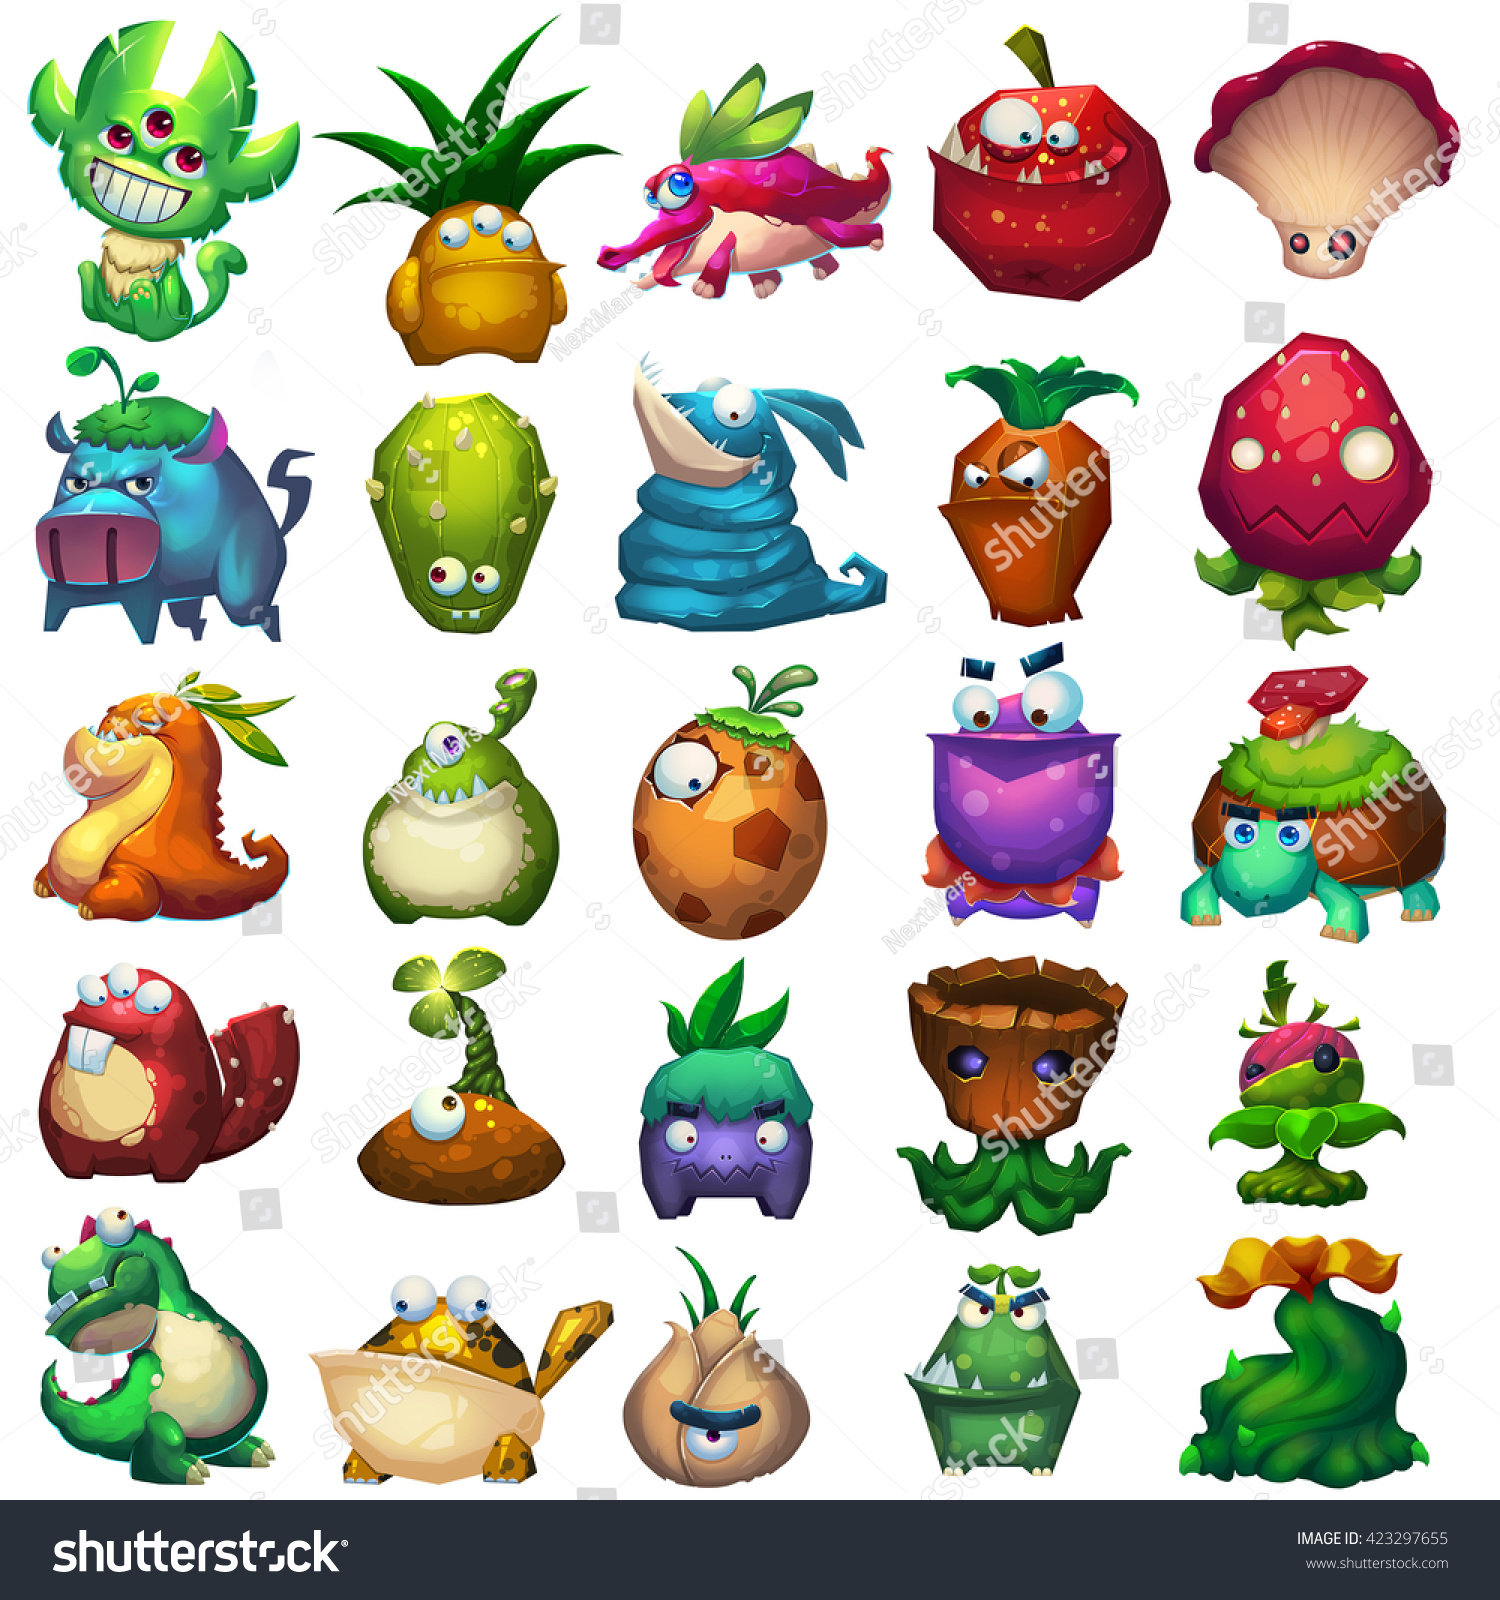 Creature And Character Design Book : Plant animal creature set monster mascot stock